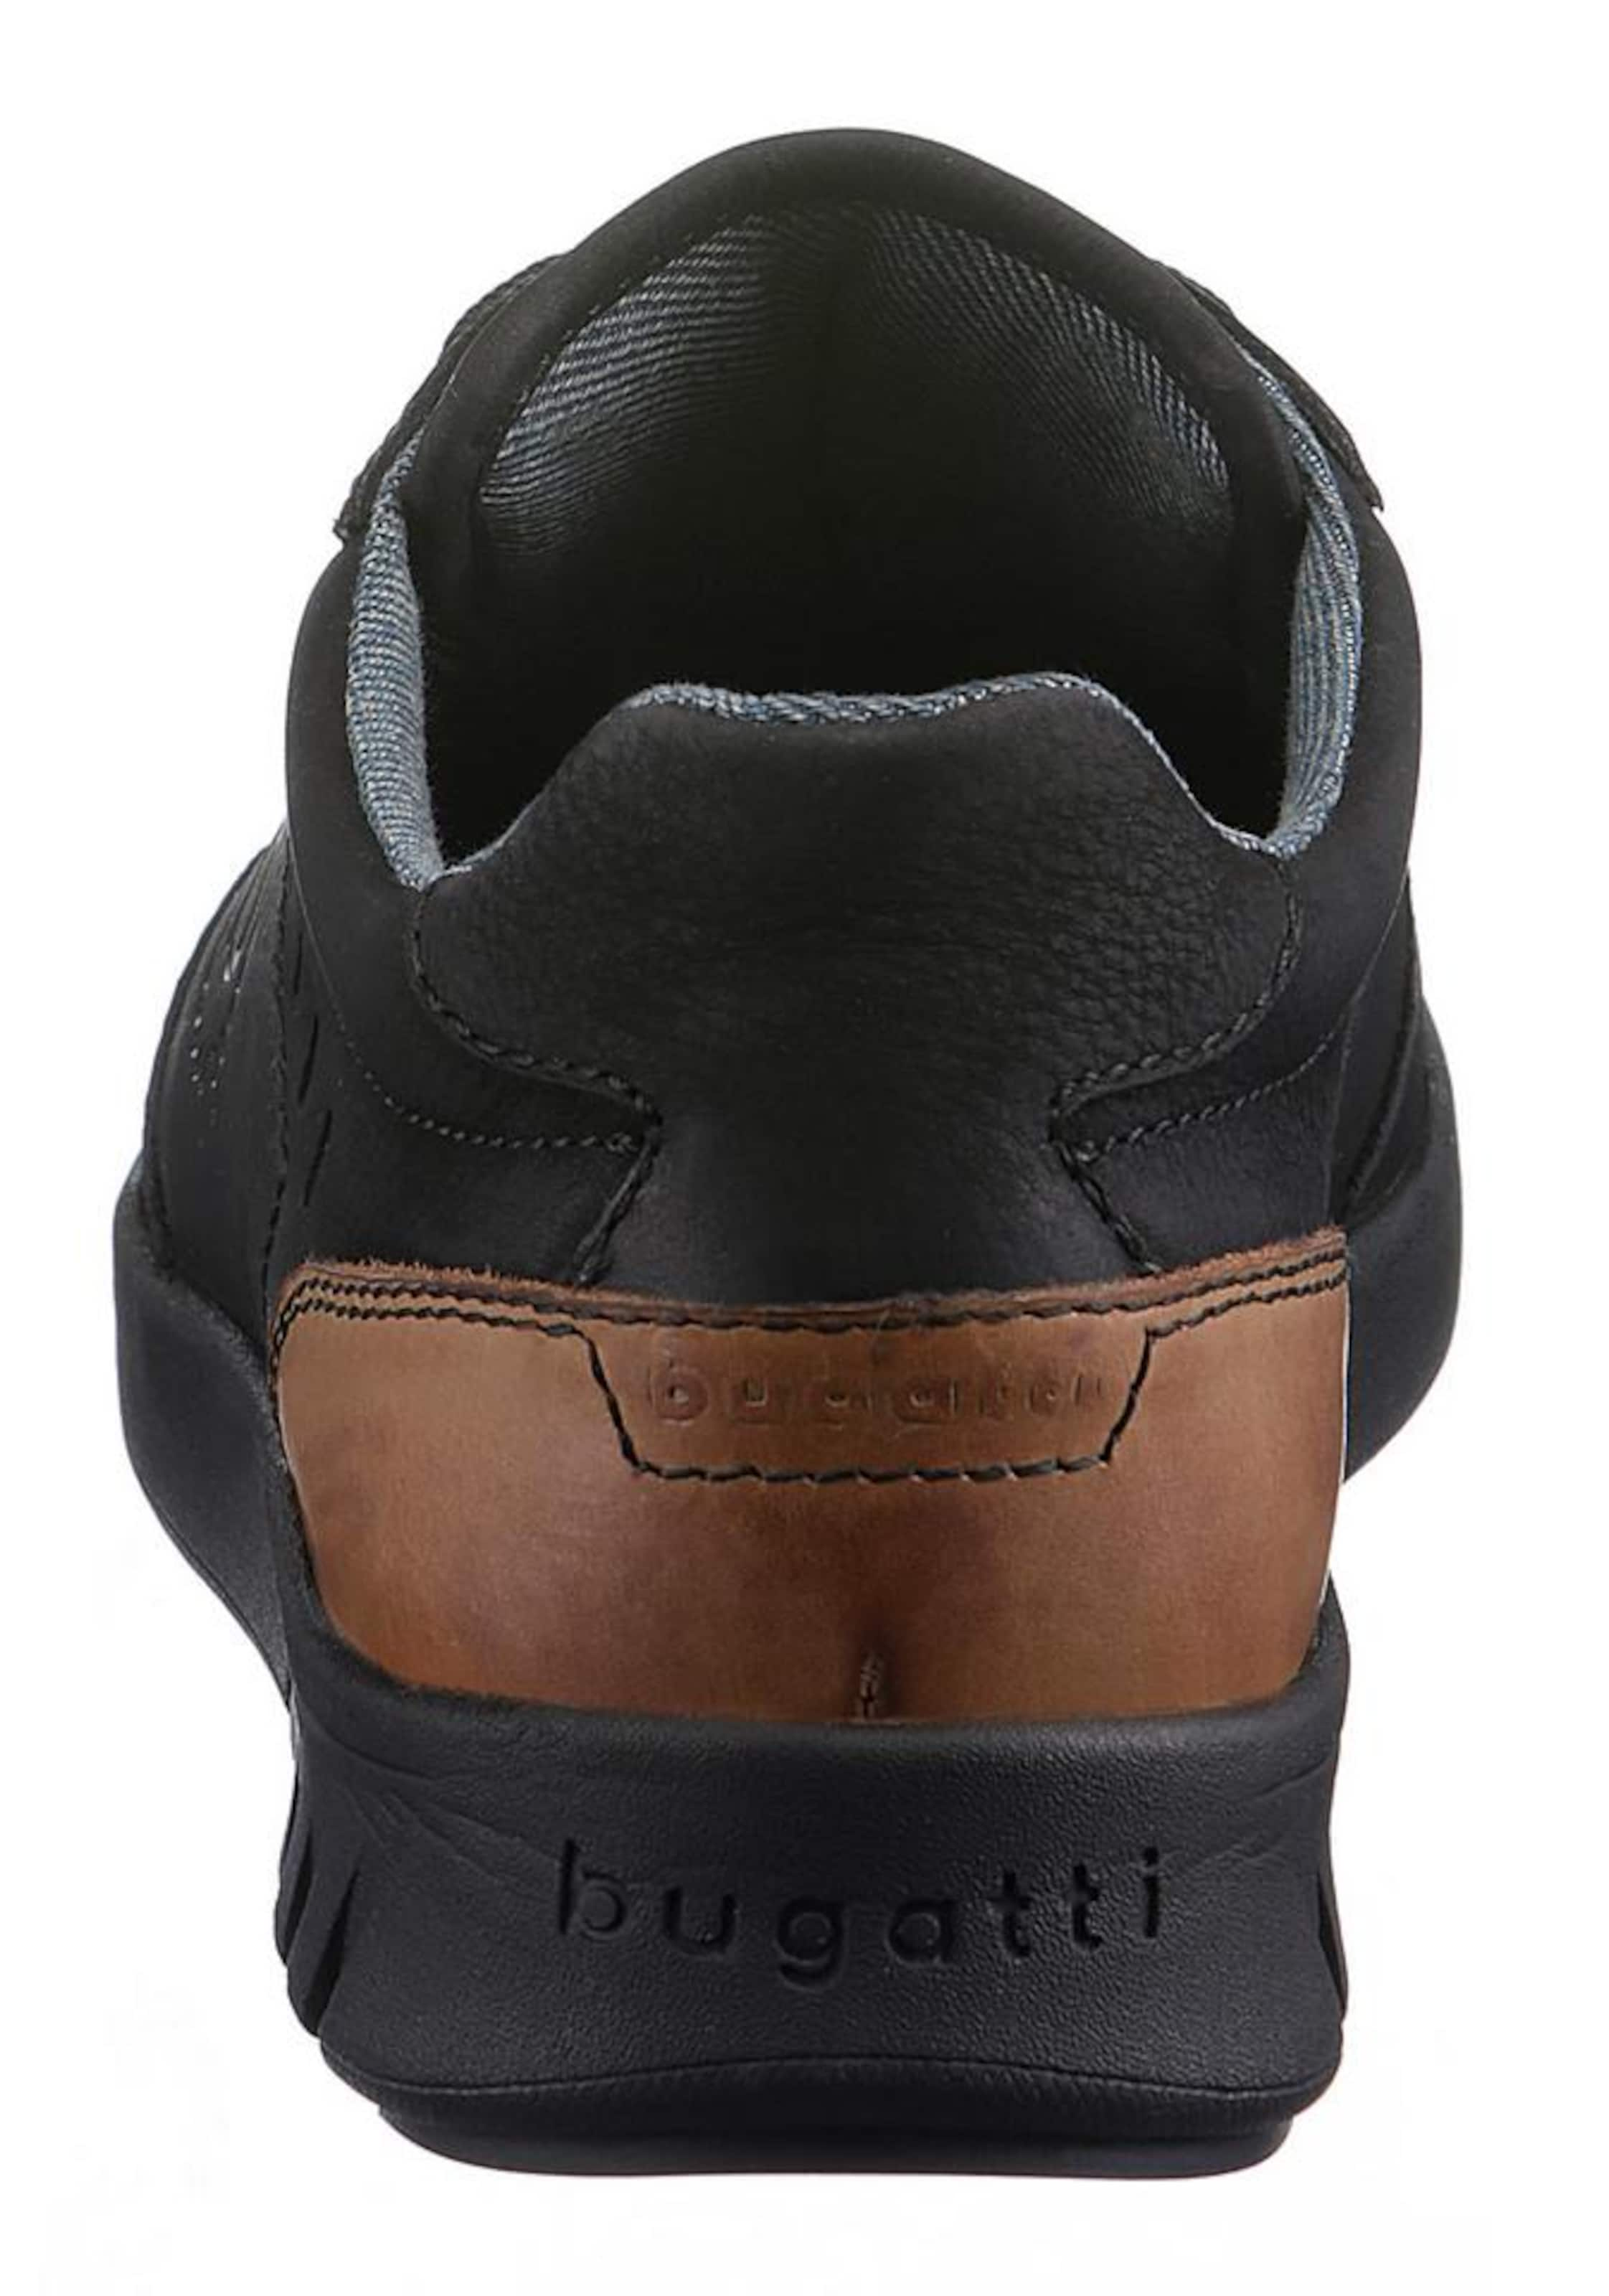 Baskets Basses Bugatti MarronNoir Bugatti En Baskets Basses 4ARj35Lq